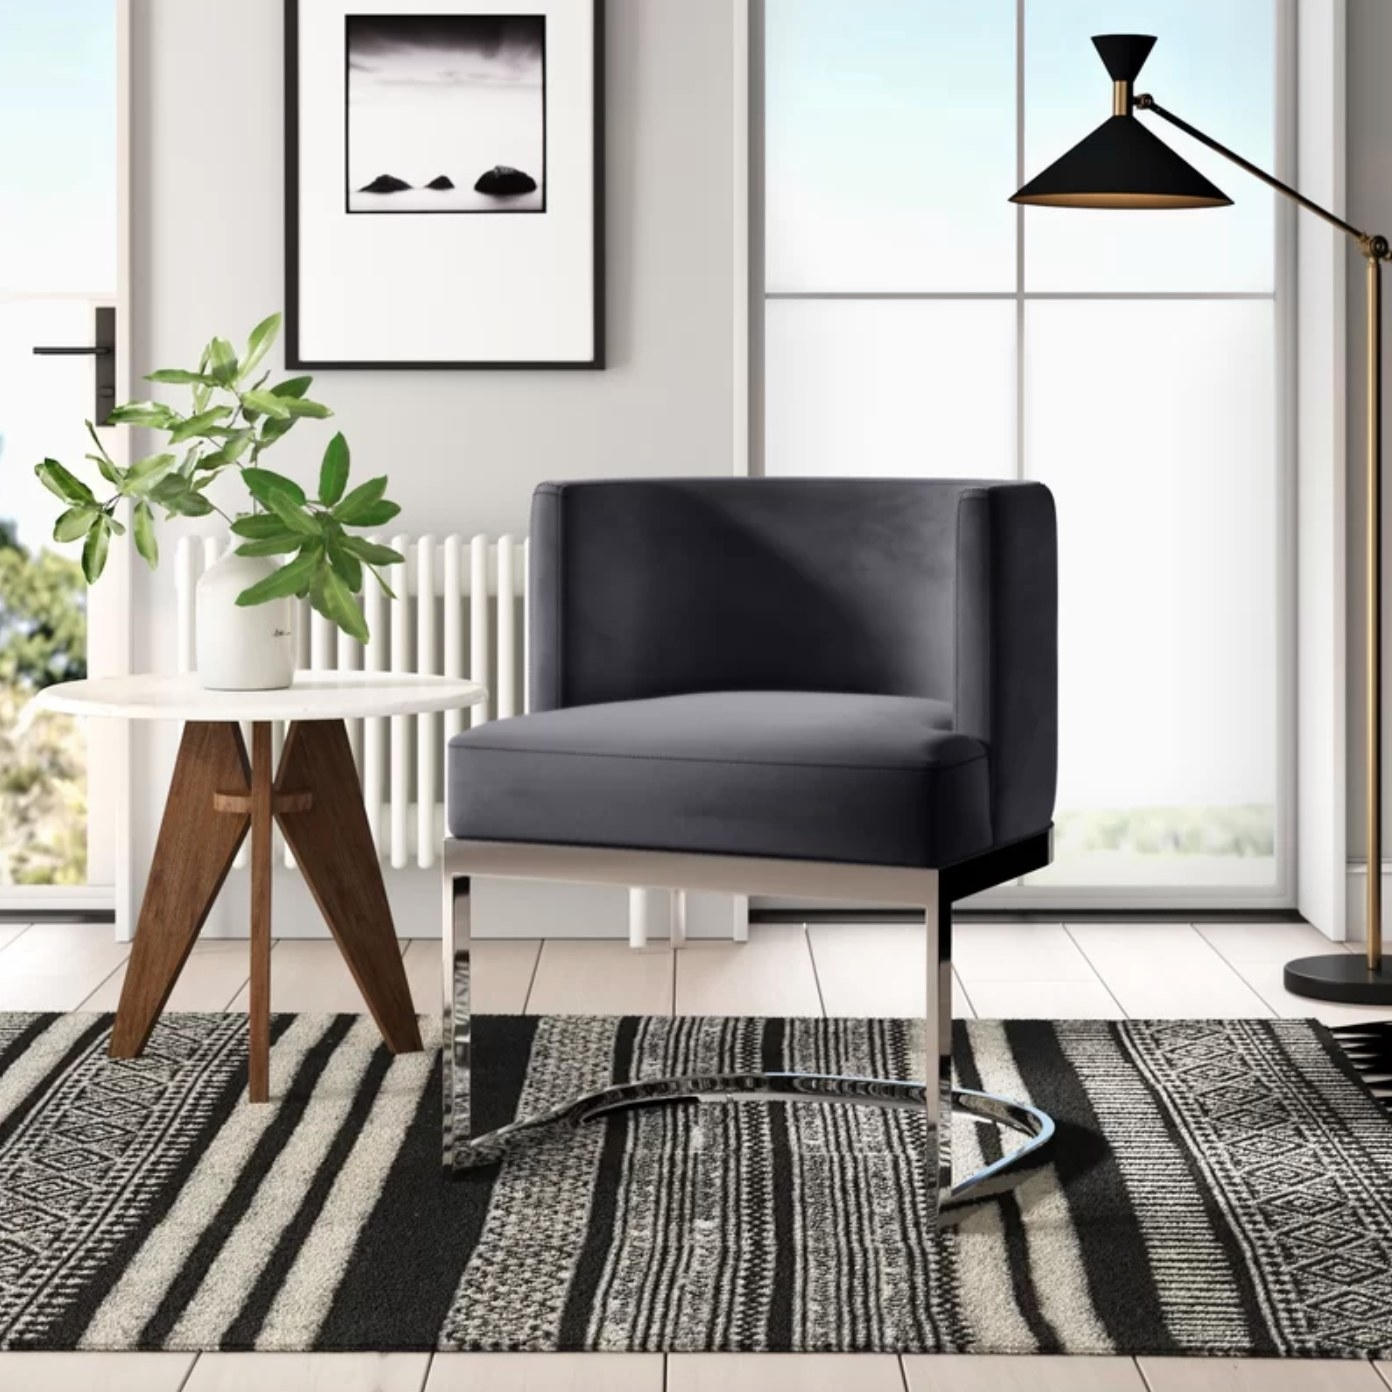 The upholstered dining chair in gray with silver legs